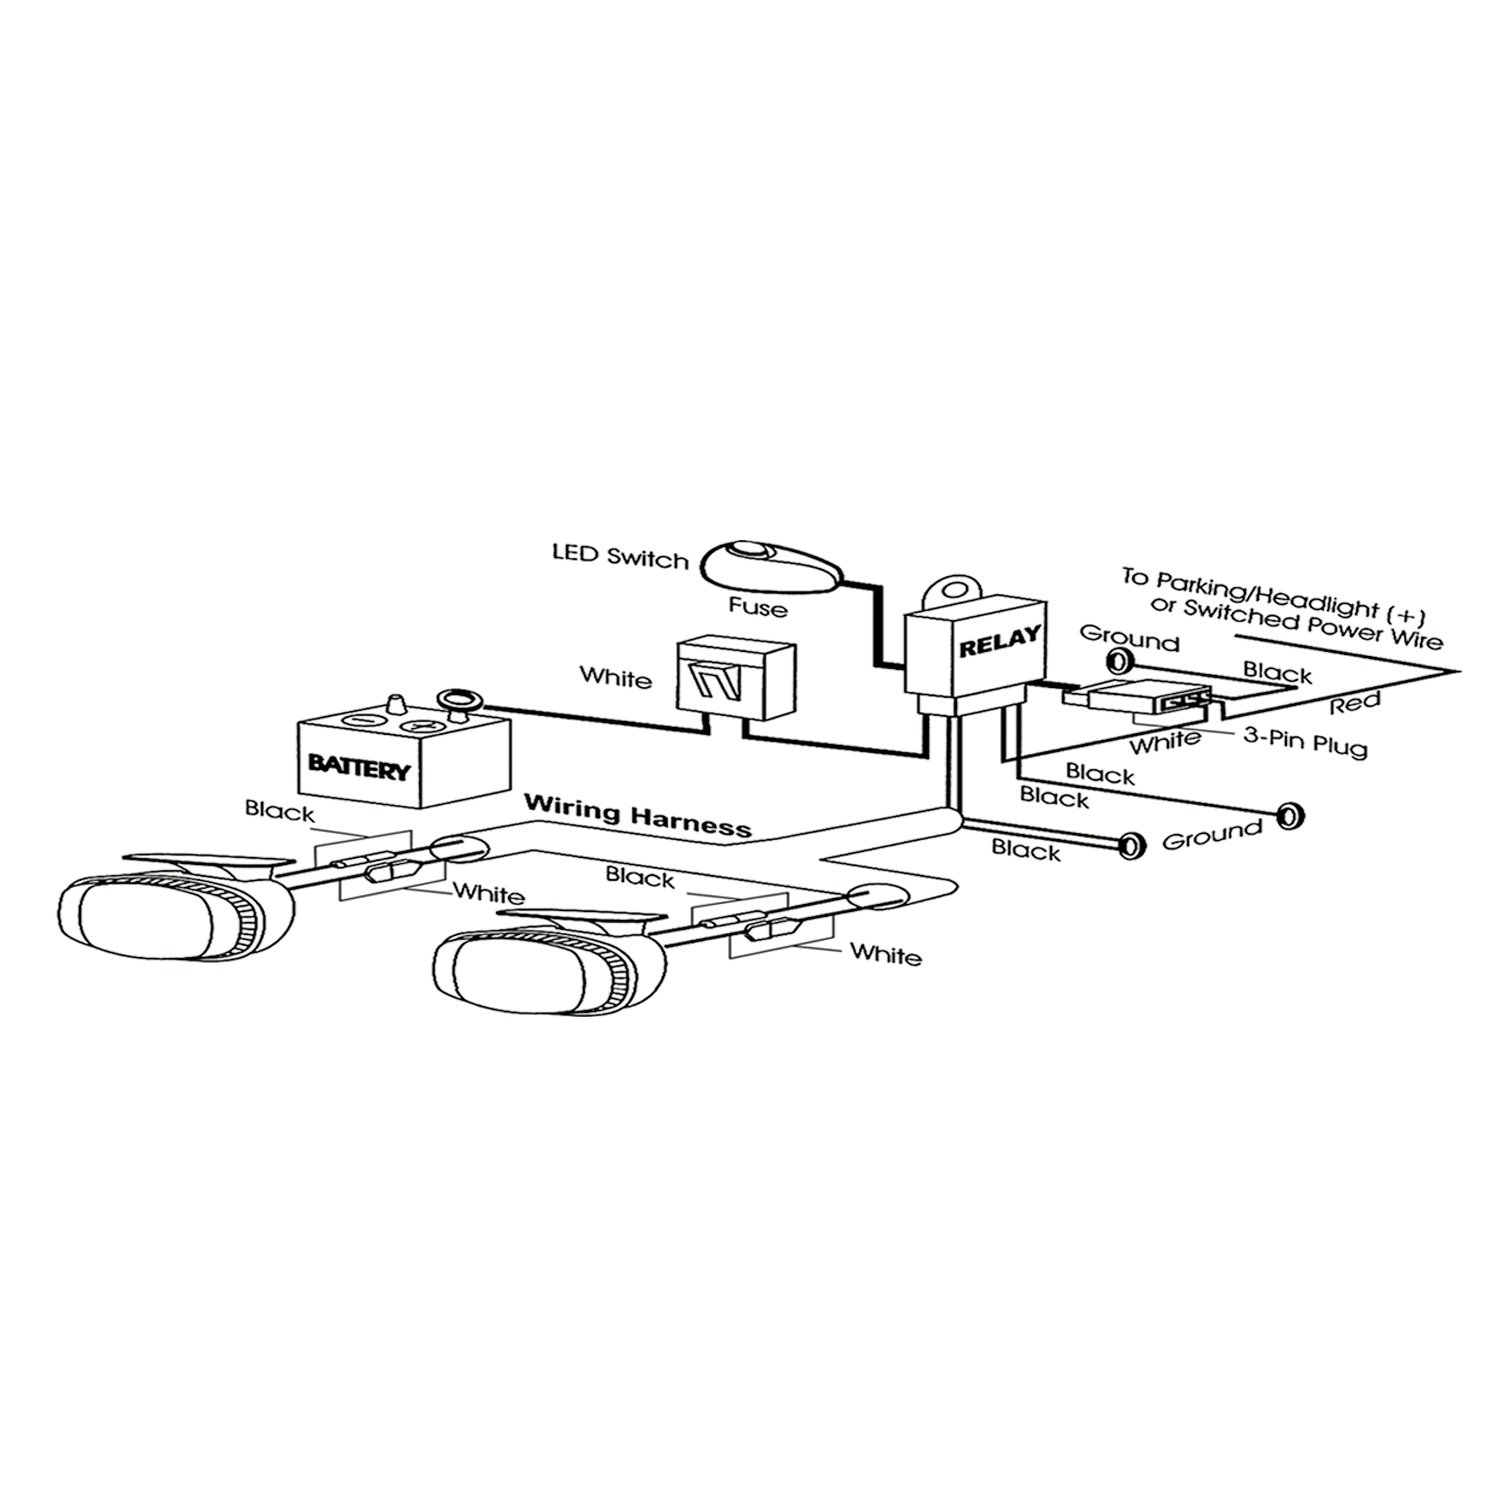 61HNbyyO7kL._SL1500_ amazon com anzousa 851062 lighting component automotive anzo wiring harness diagram at alyssarenee.co